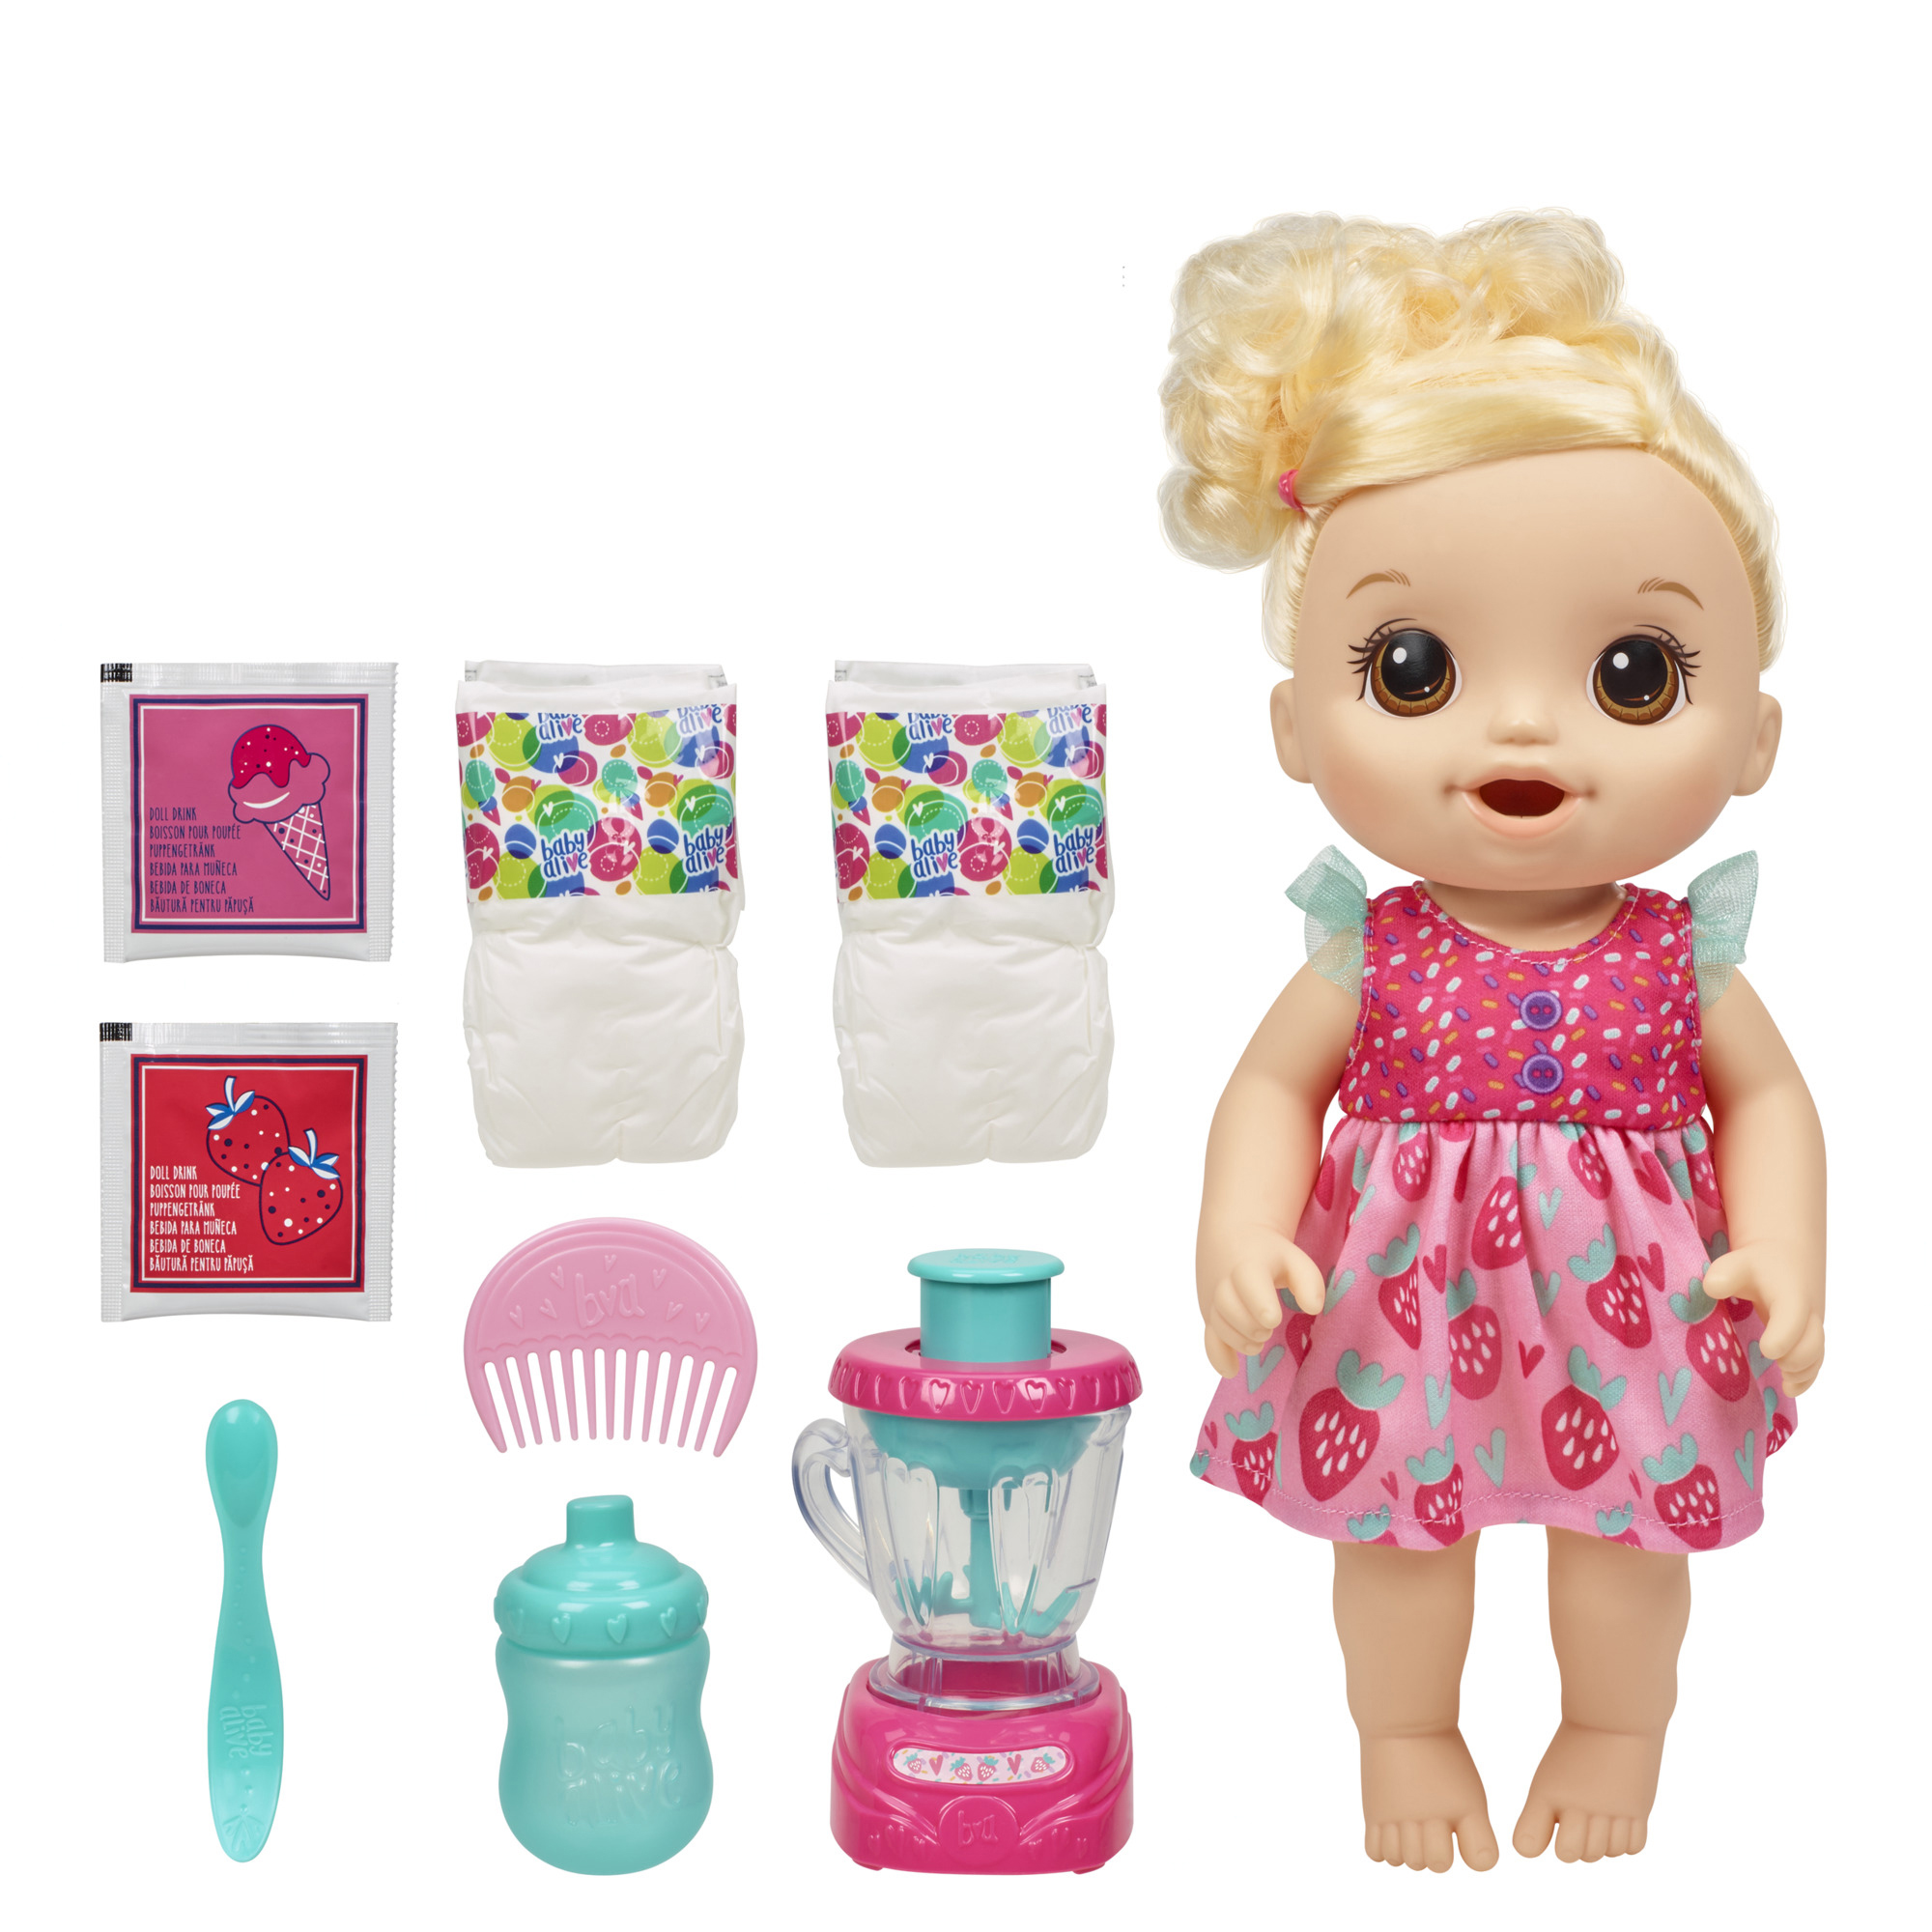 Baby Alive Magical Mixer Baby Doll Strawberry Shake With Blender Accessories Drinks Wets Eats Walmart Com Walmart Com